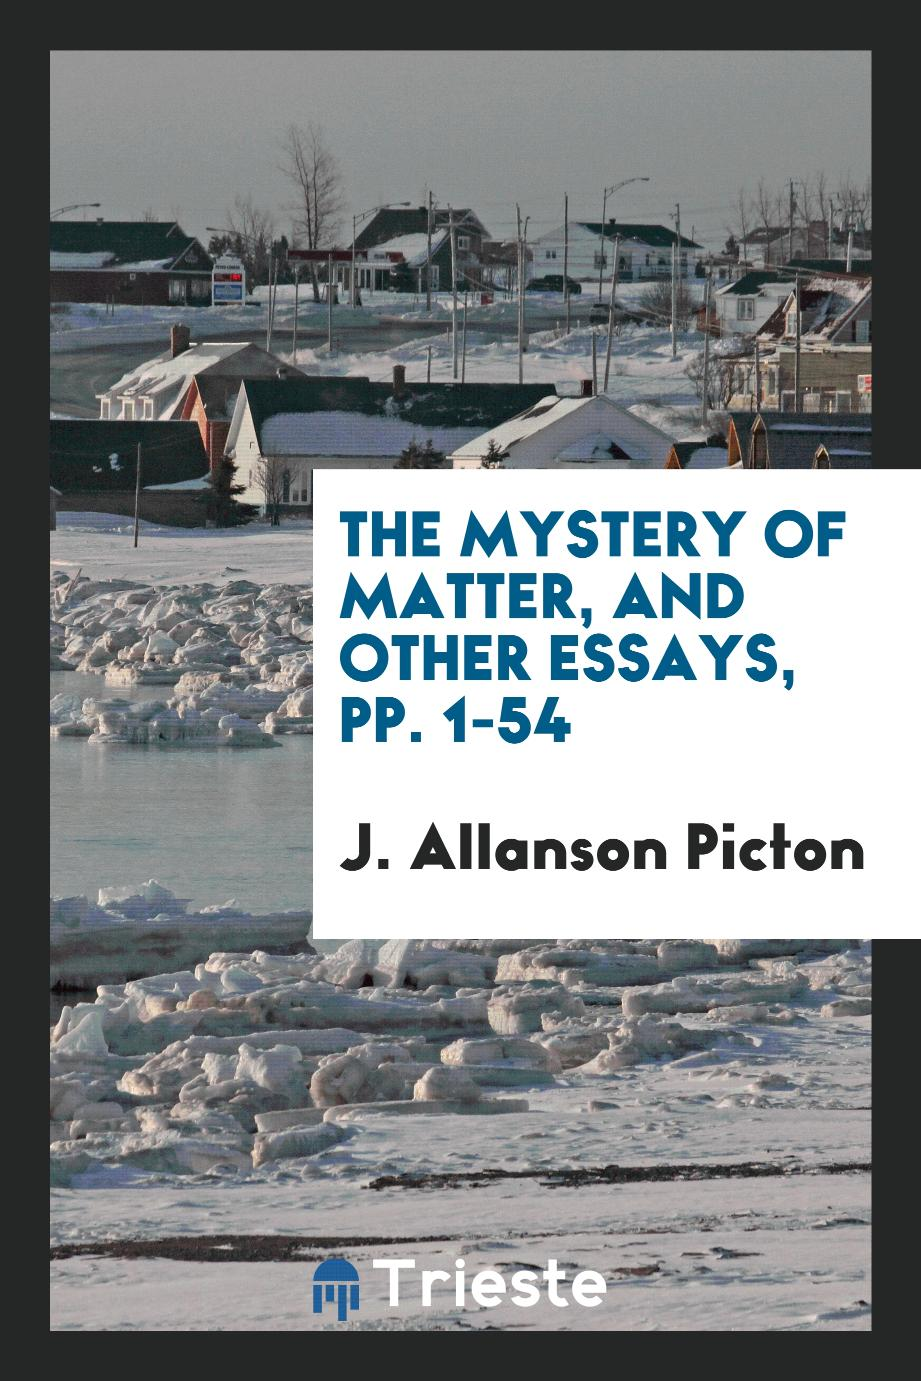 J. Allanson Picton - The Mystery of Matter, and Other Essays, pp. 1-54